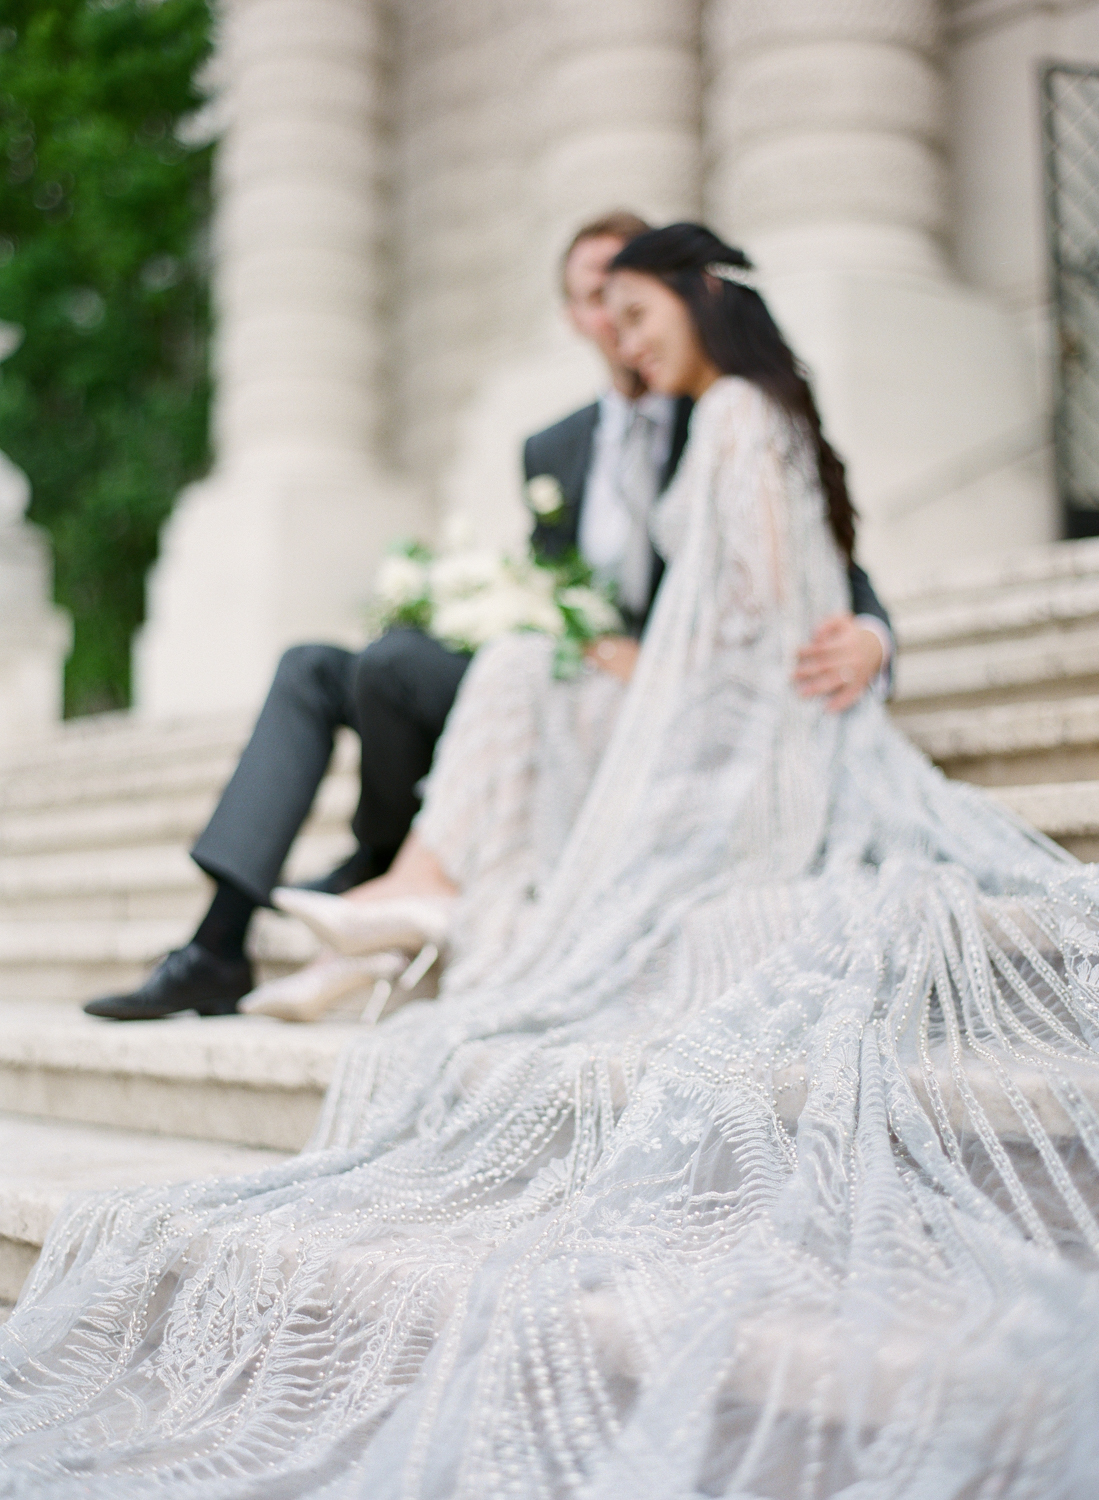 Vienna_prewedding_shoot_nikol_bodnarova_resized_05.JPG